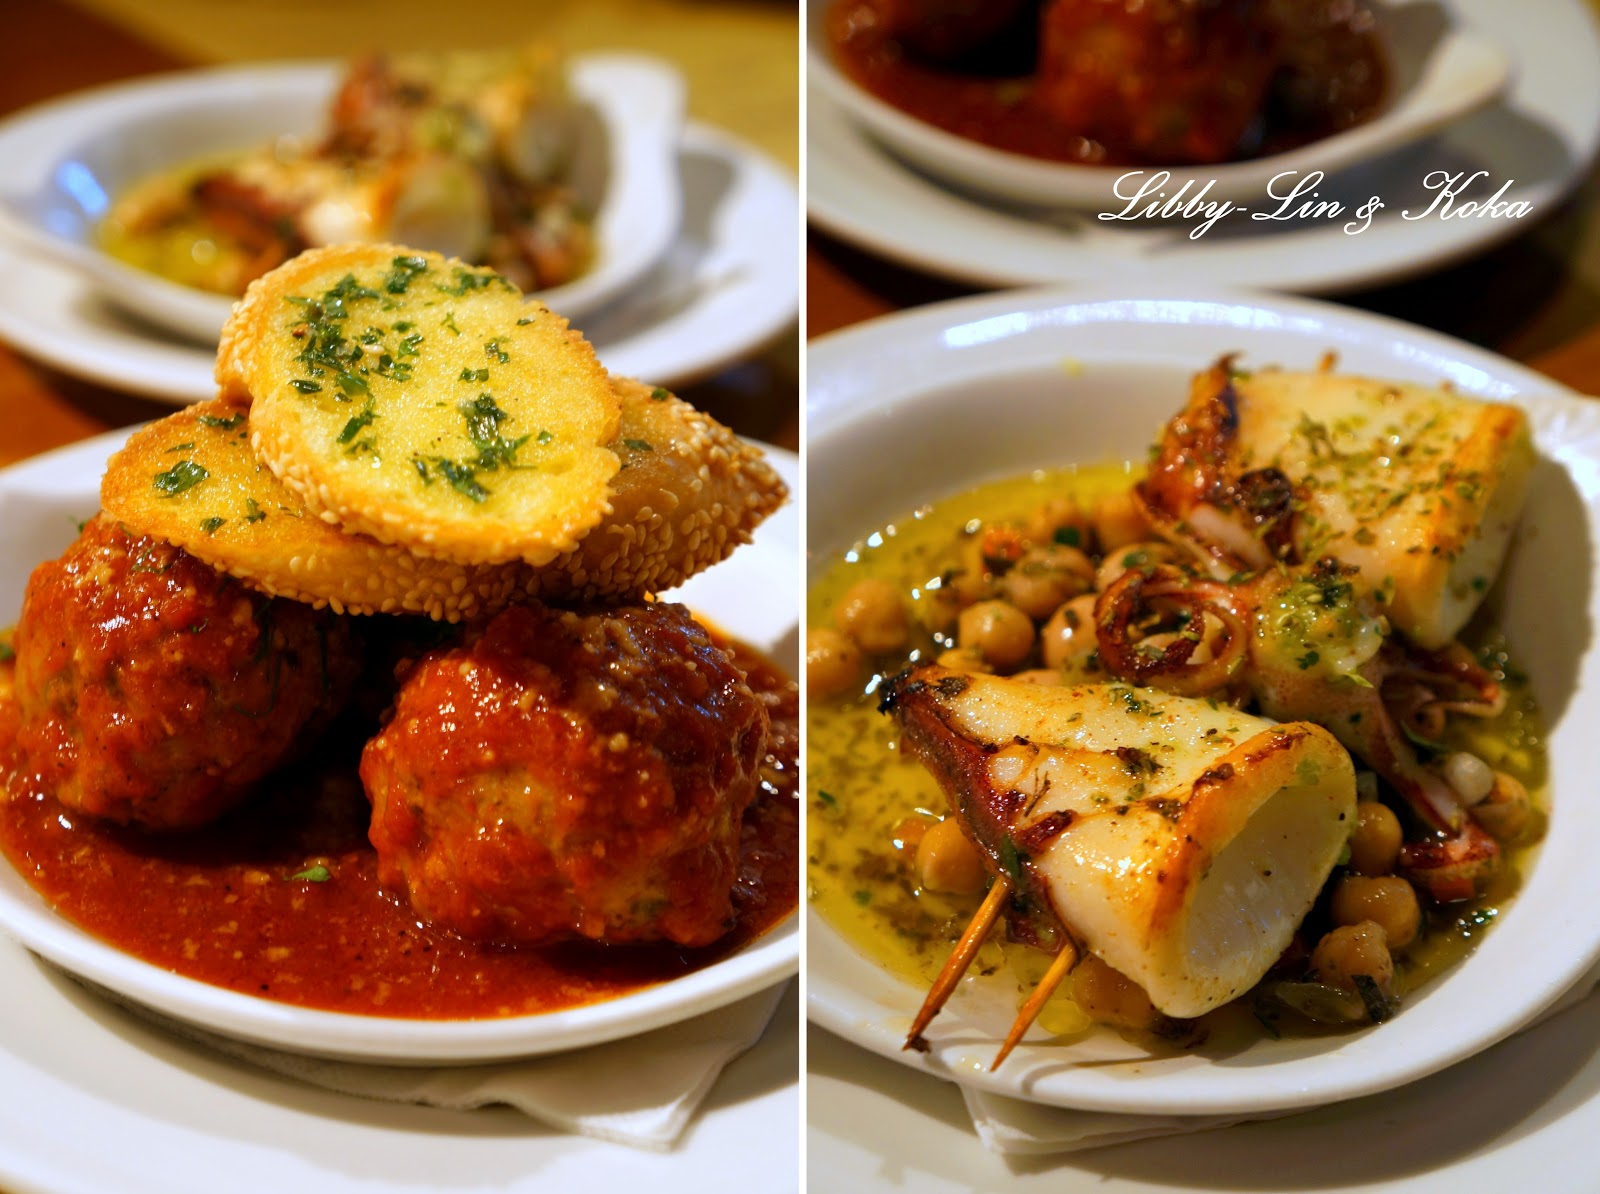 Meatballs+al+forno+and+Calamari+al+forno+with+fagioli+&+oregano.jpg